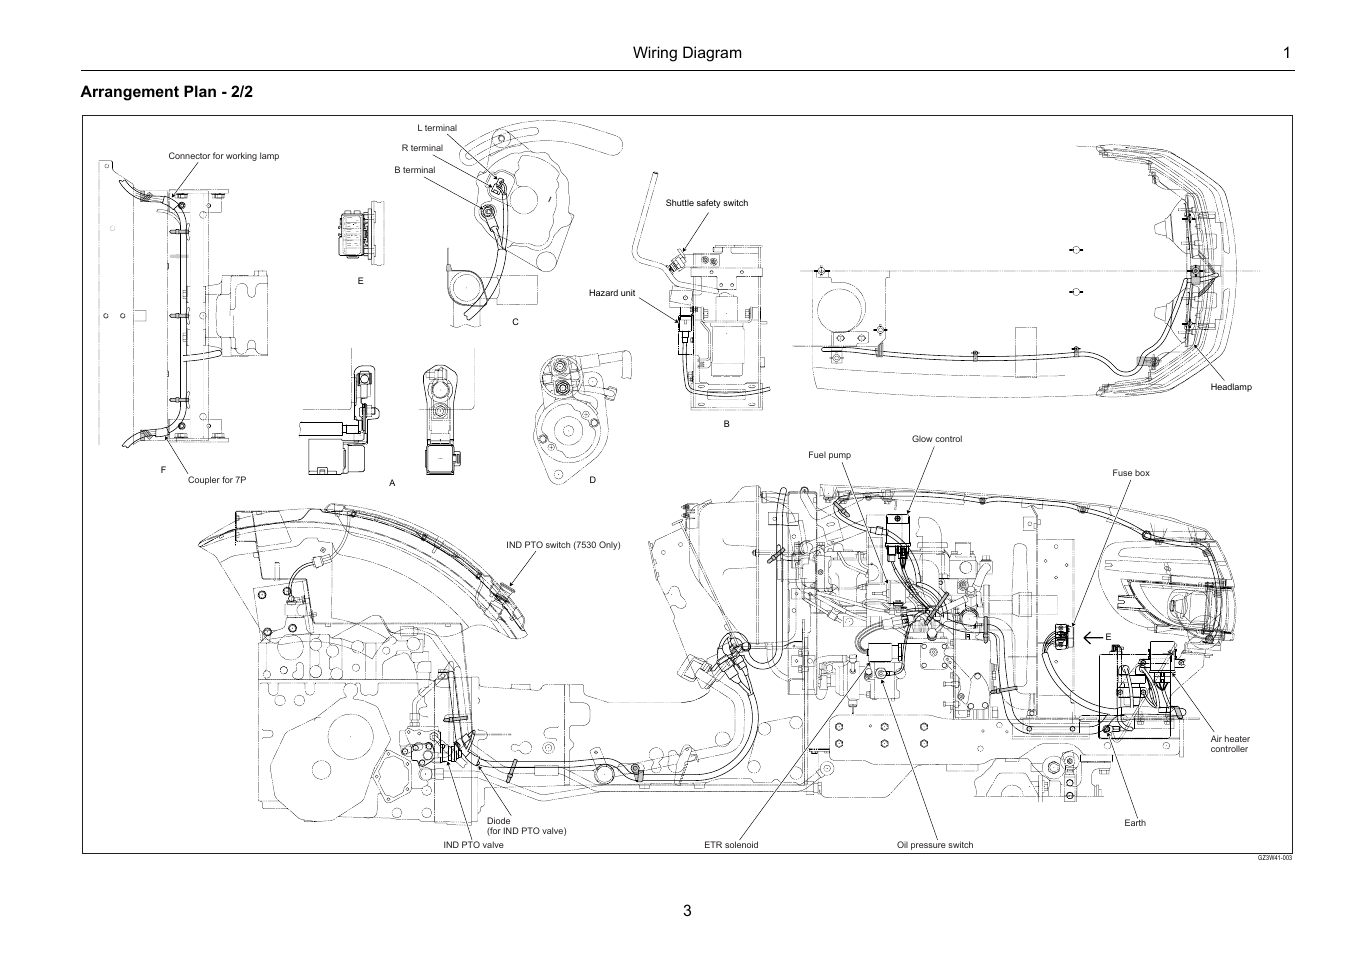 Wiring Diagram 1 3 Arrangement Plan 2 2 Cub Cadet 7532